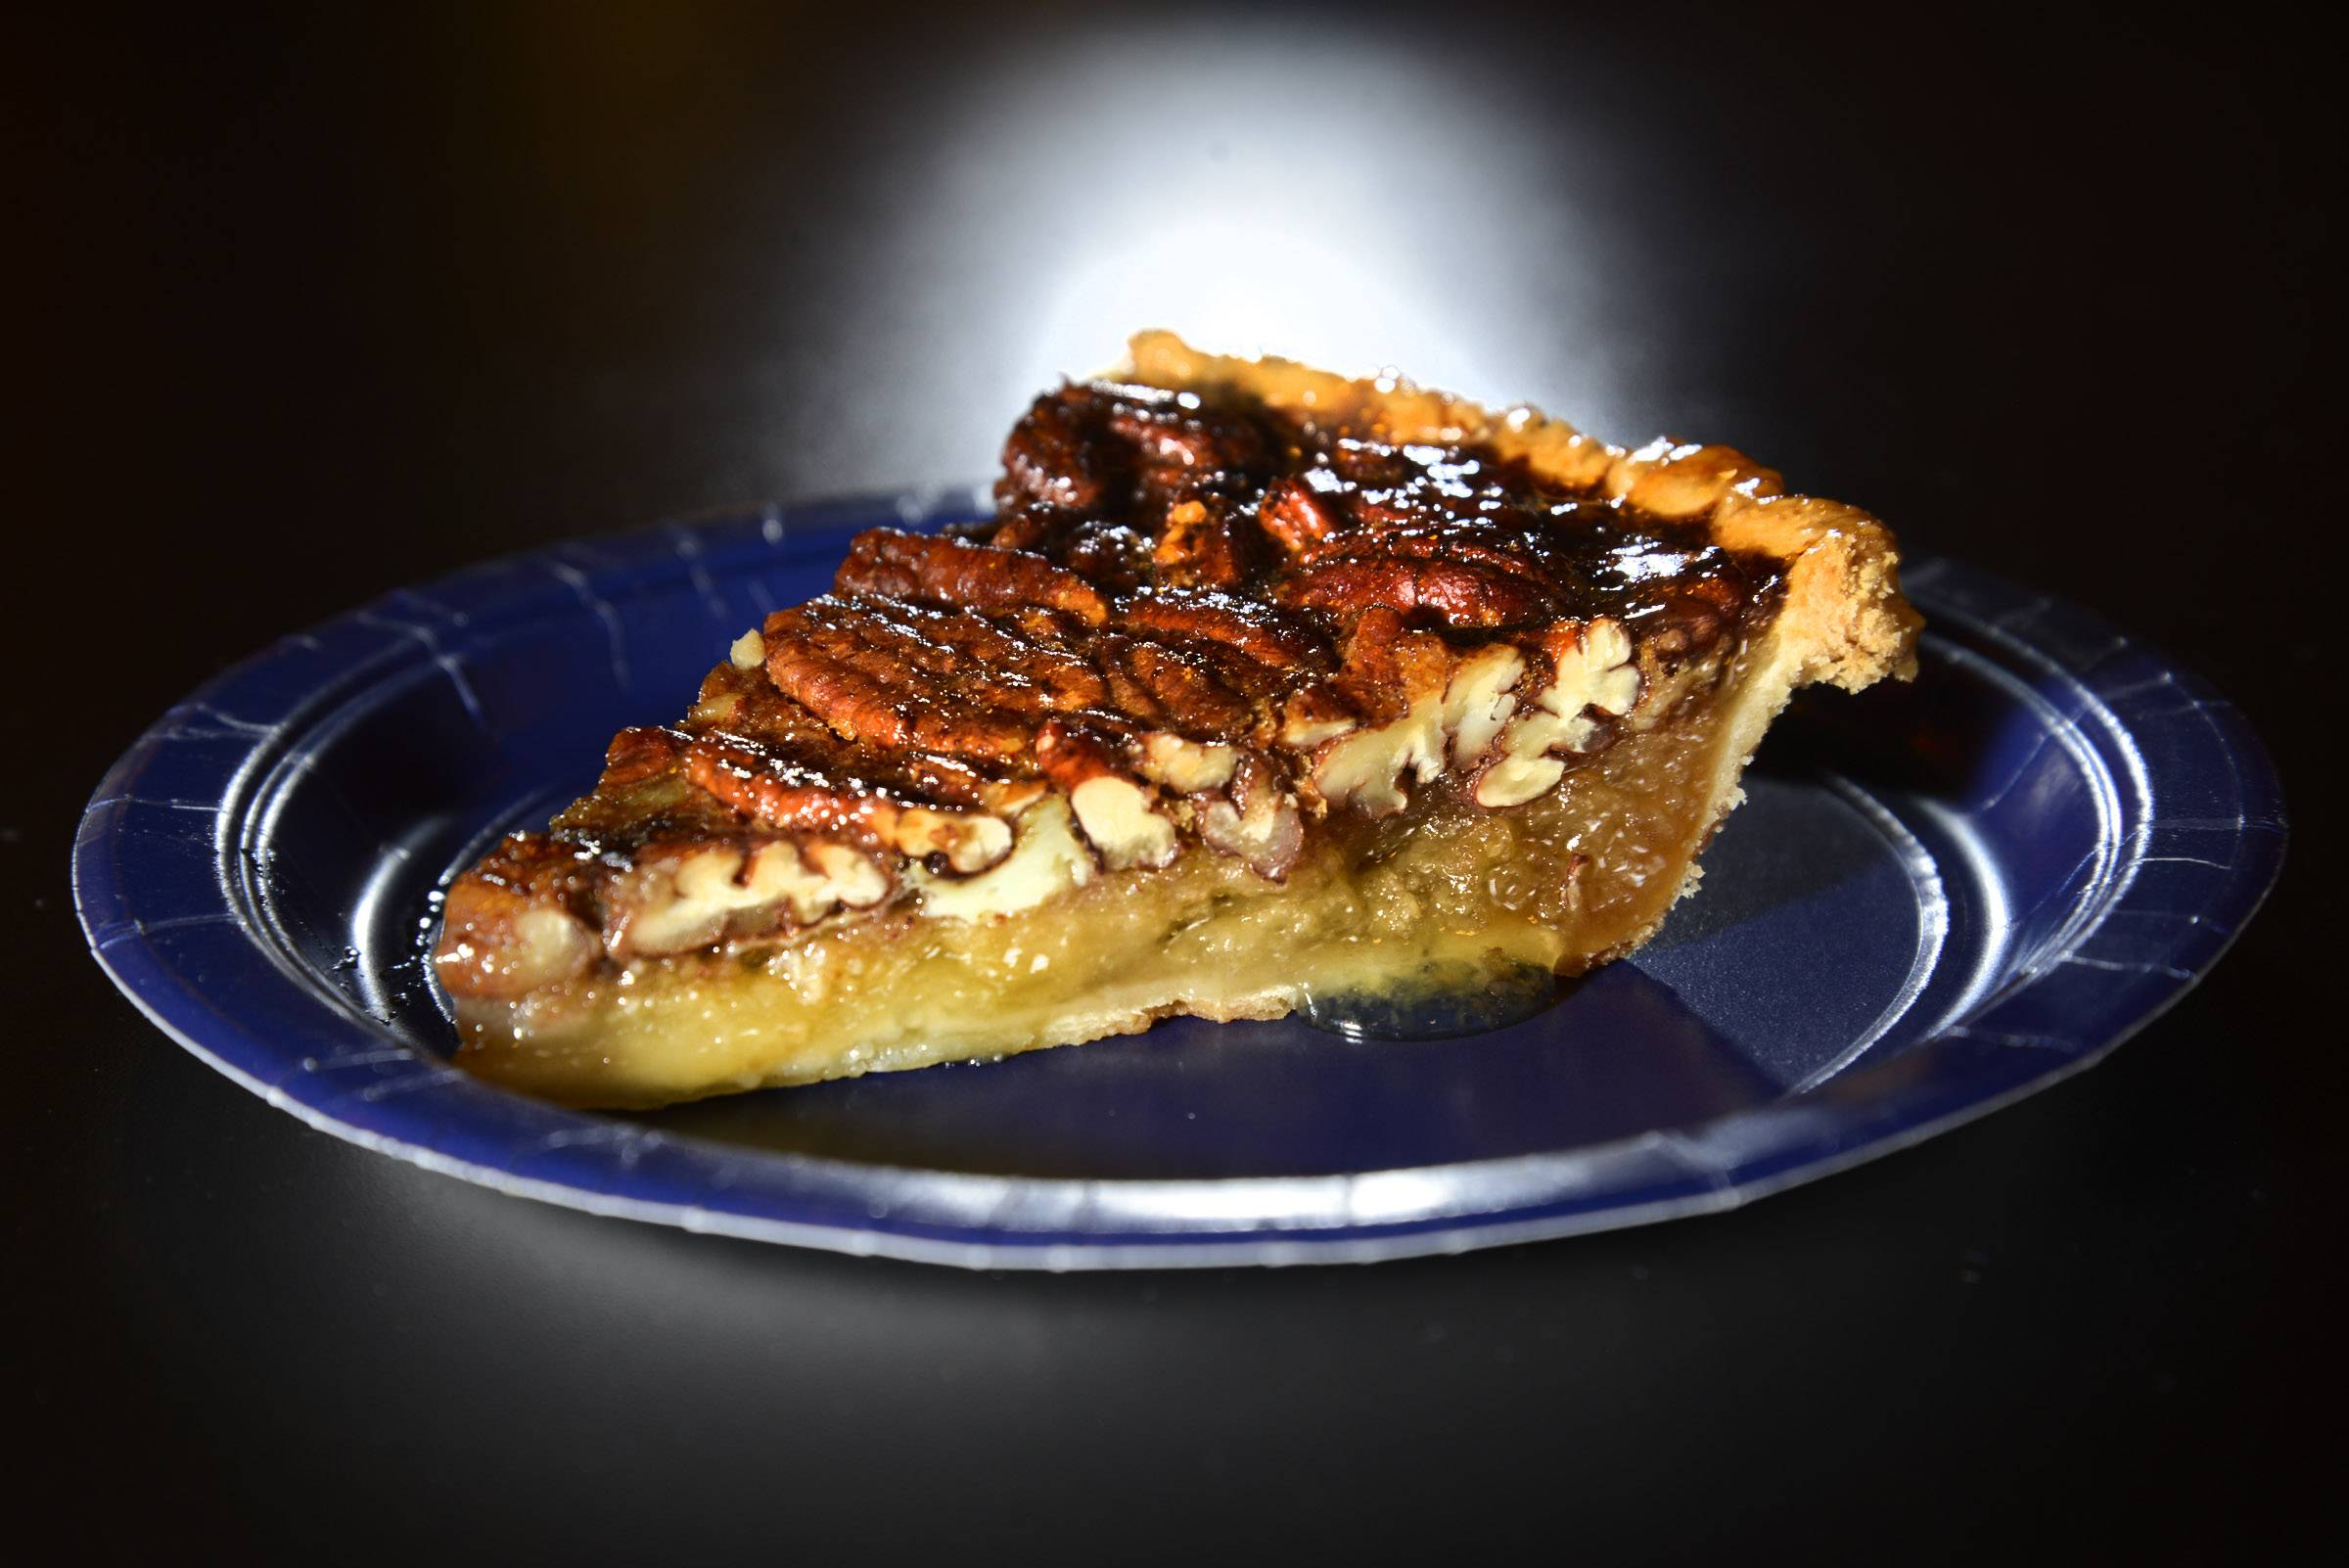 There are several items on the dessert menu at Rock 'n Ribs BBQ, but pecan pie deserves the spotlight.